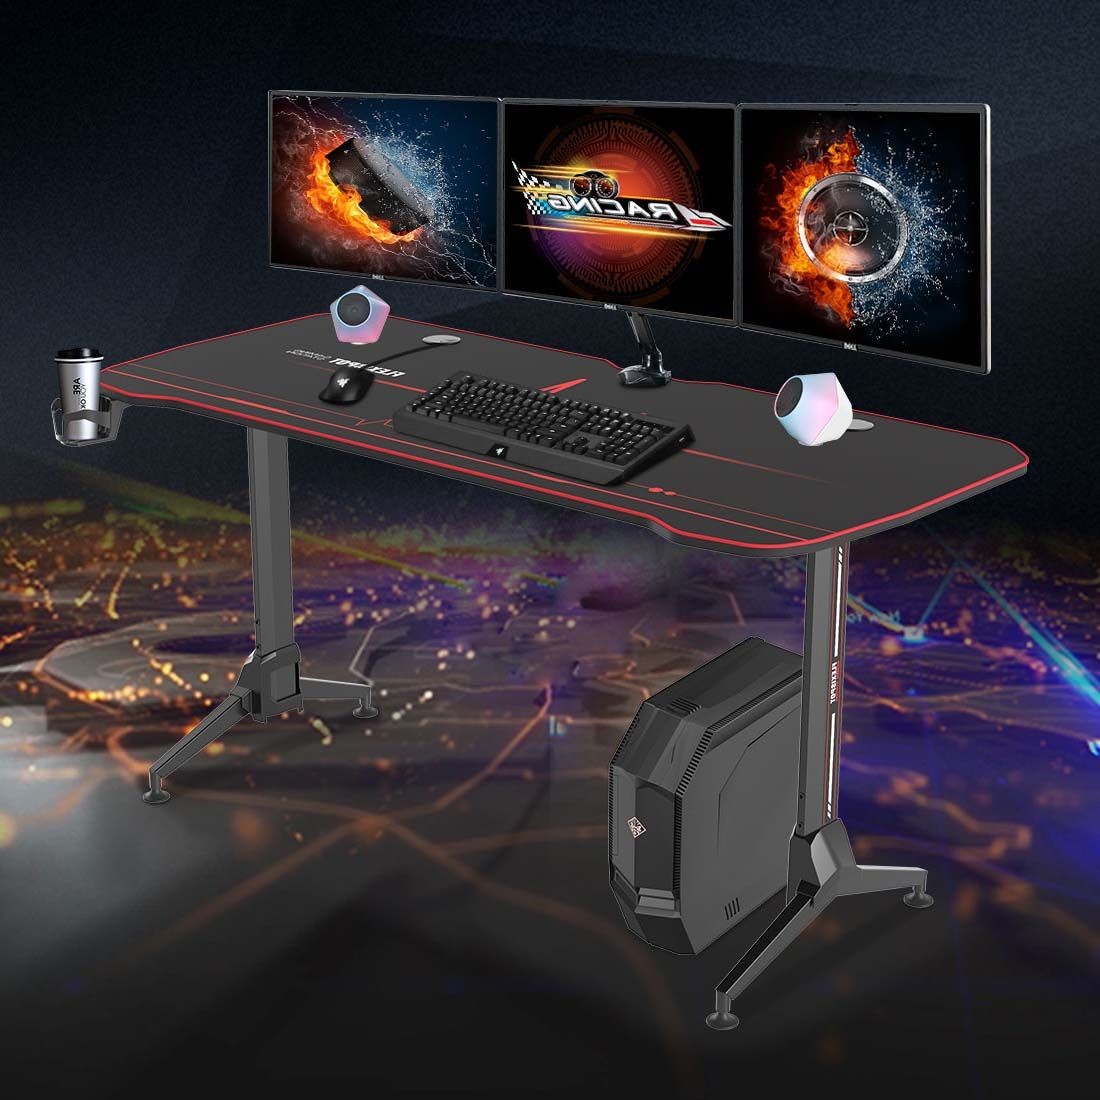 gaming desk and two people enjoying gaming